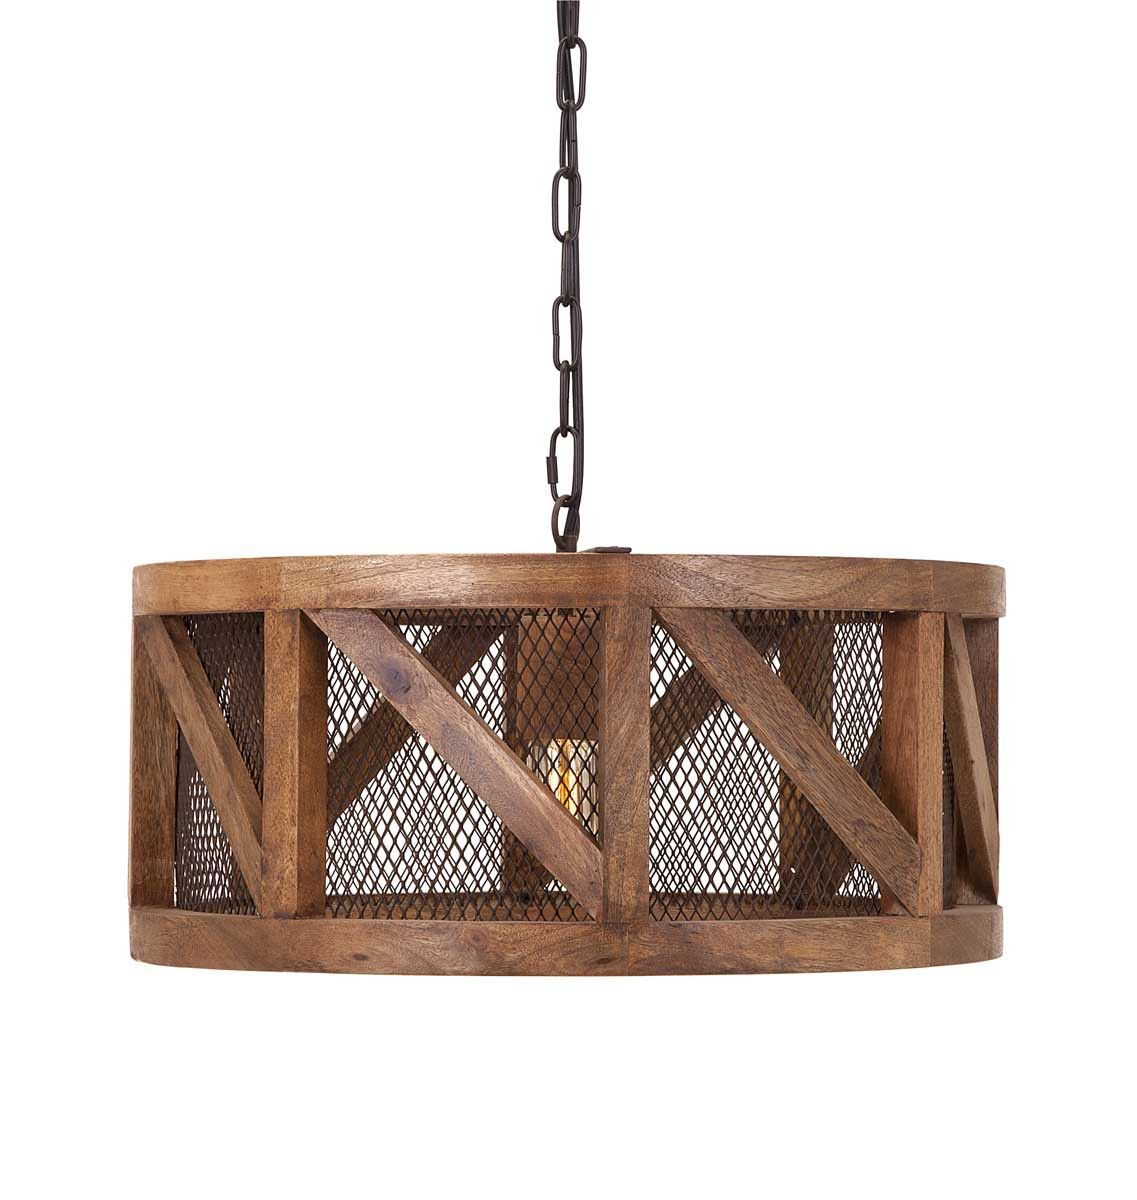 Old Fashioned Wire Mesh Pendant Light Composition - Wiring Diagram ...